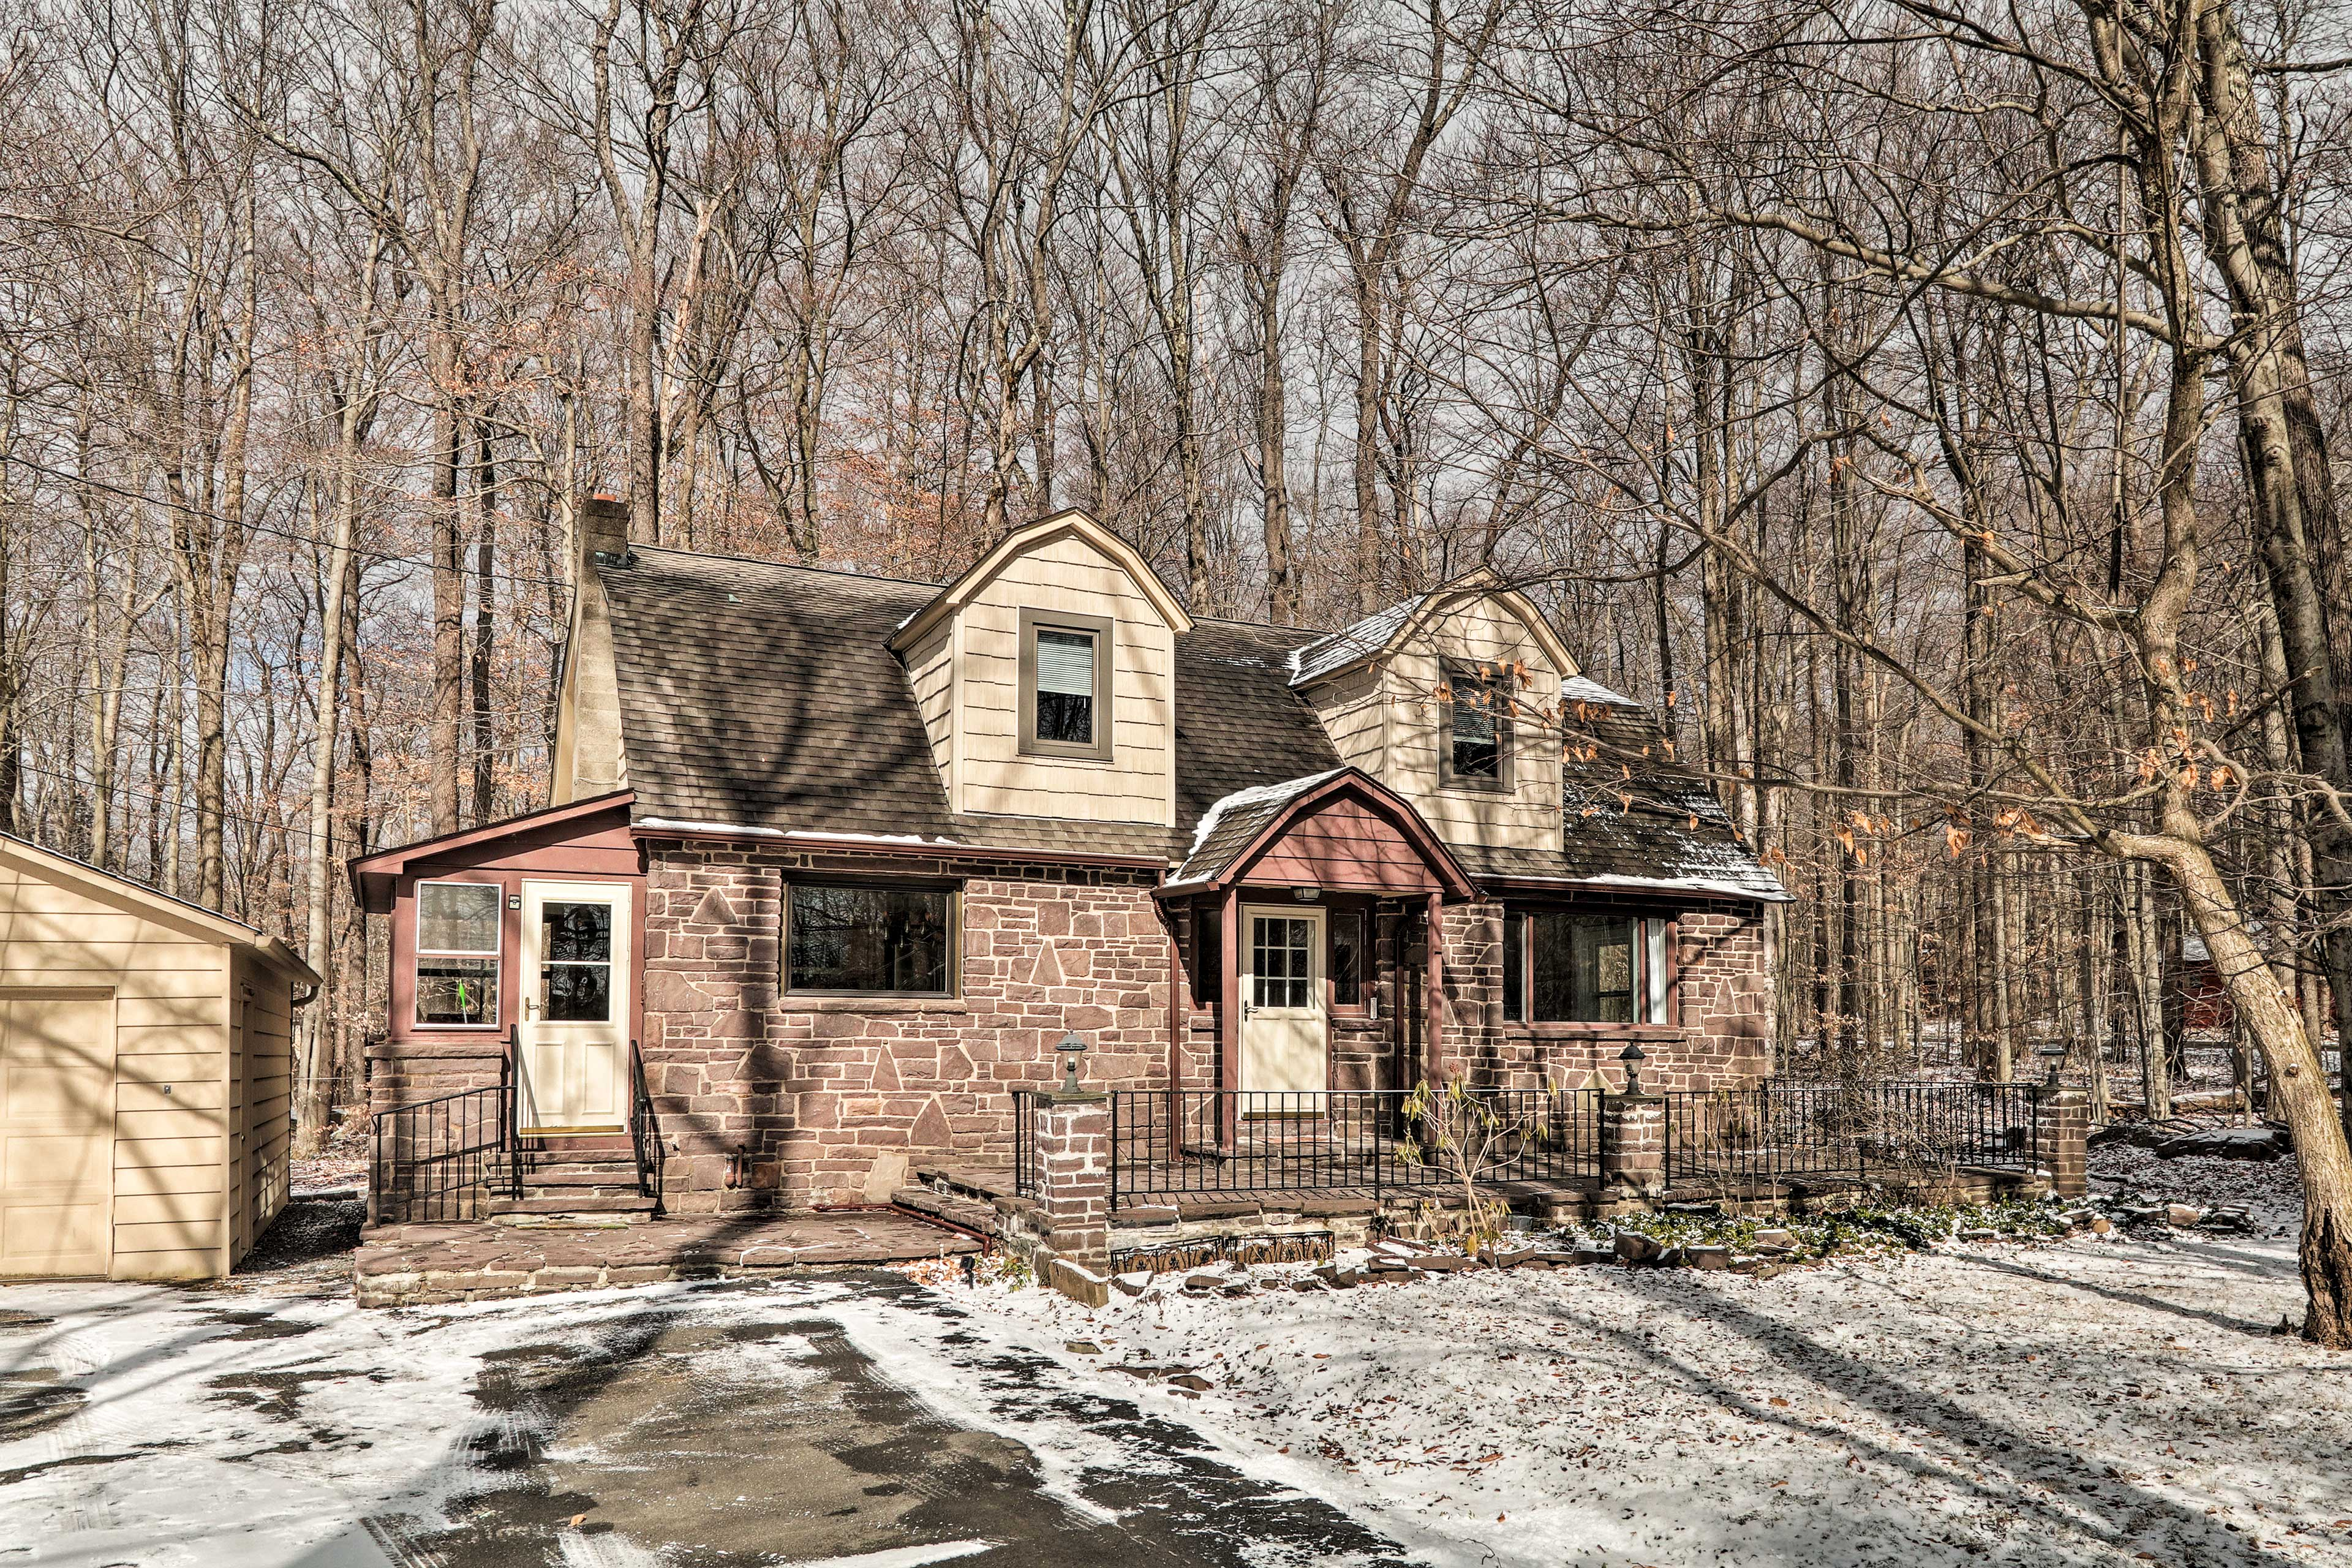 Book this charming vacation rental for your upcoming Poconos vacay!